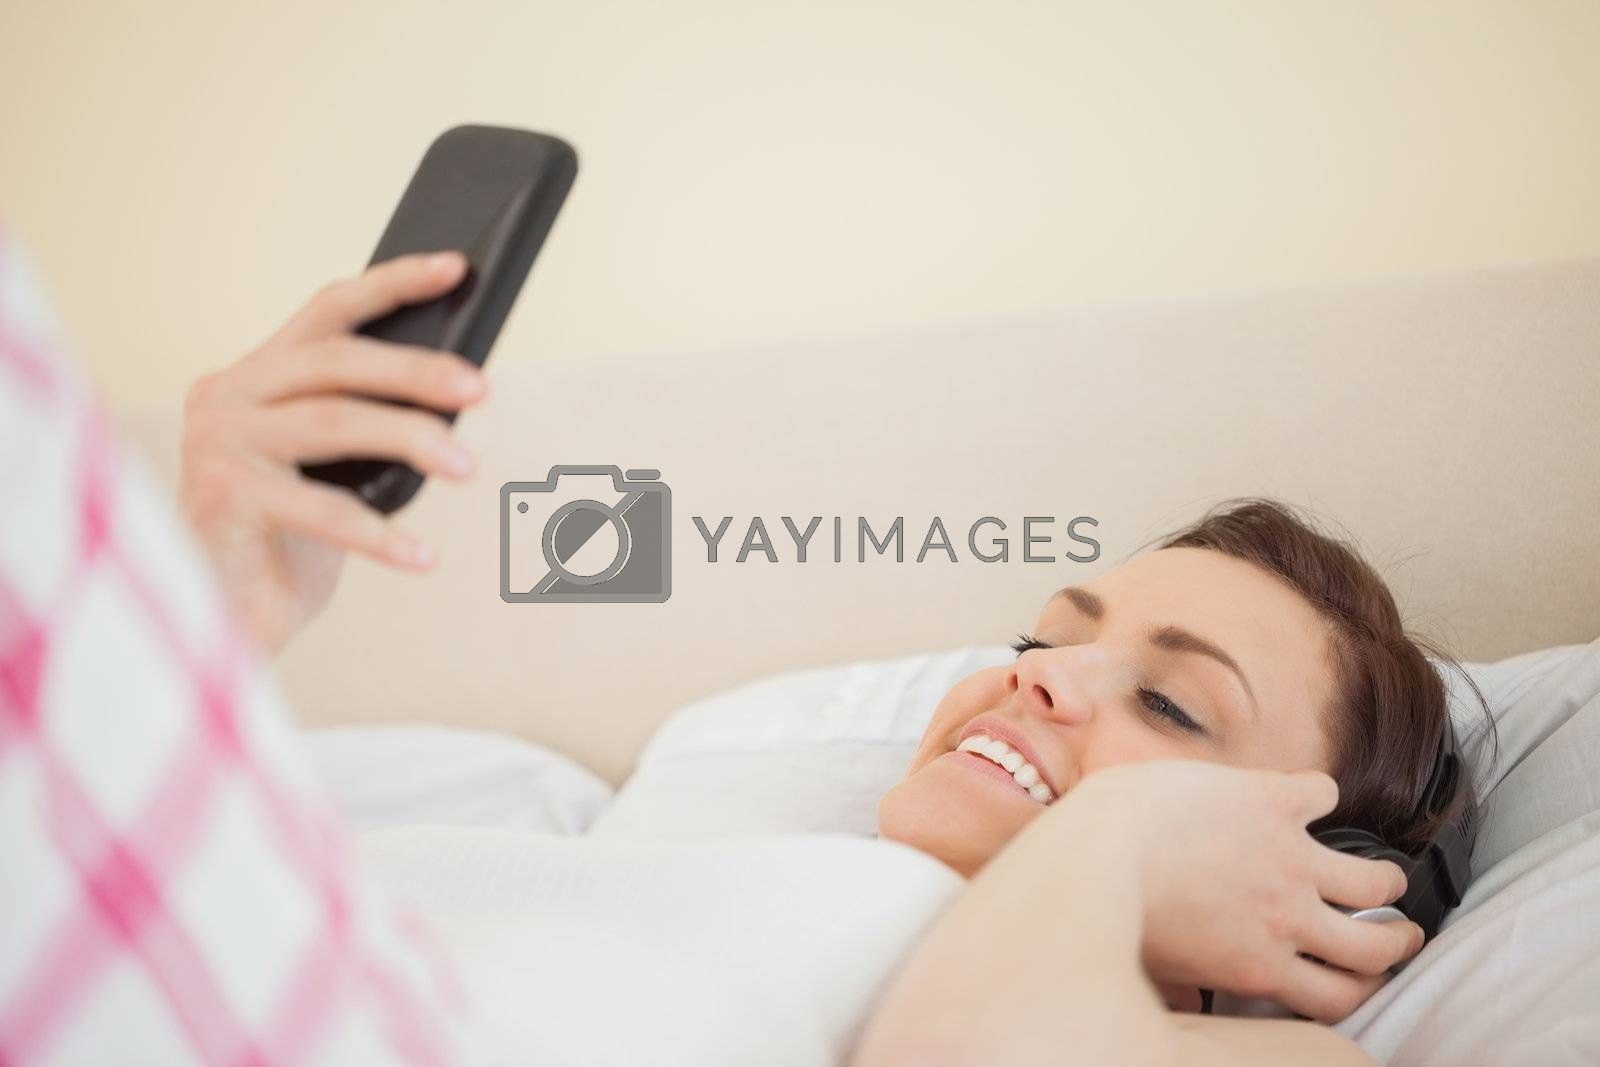 Happy girl listening to music and using a mobile phone lying on a bed by Wavebreakmedia